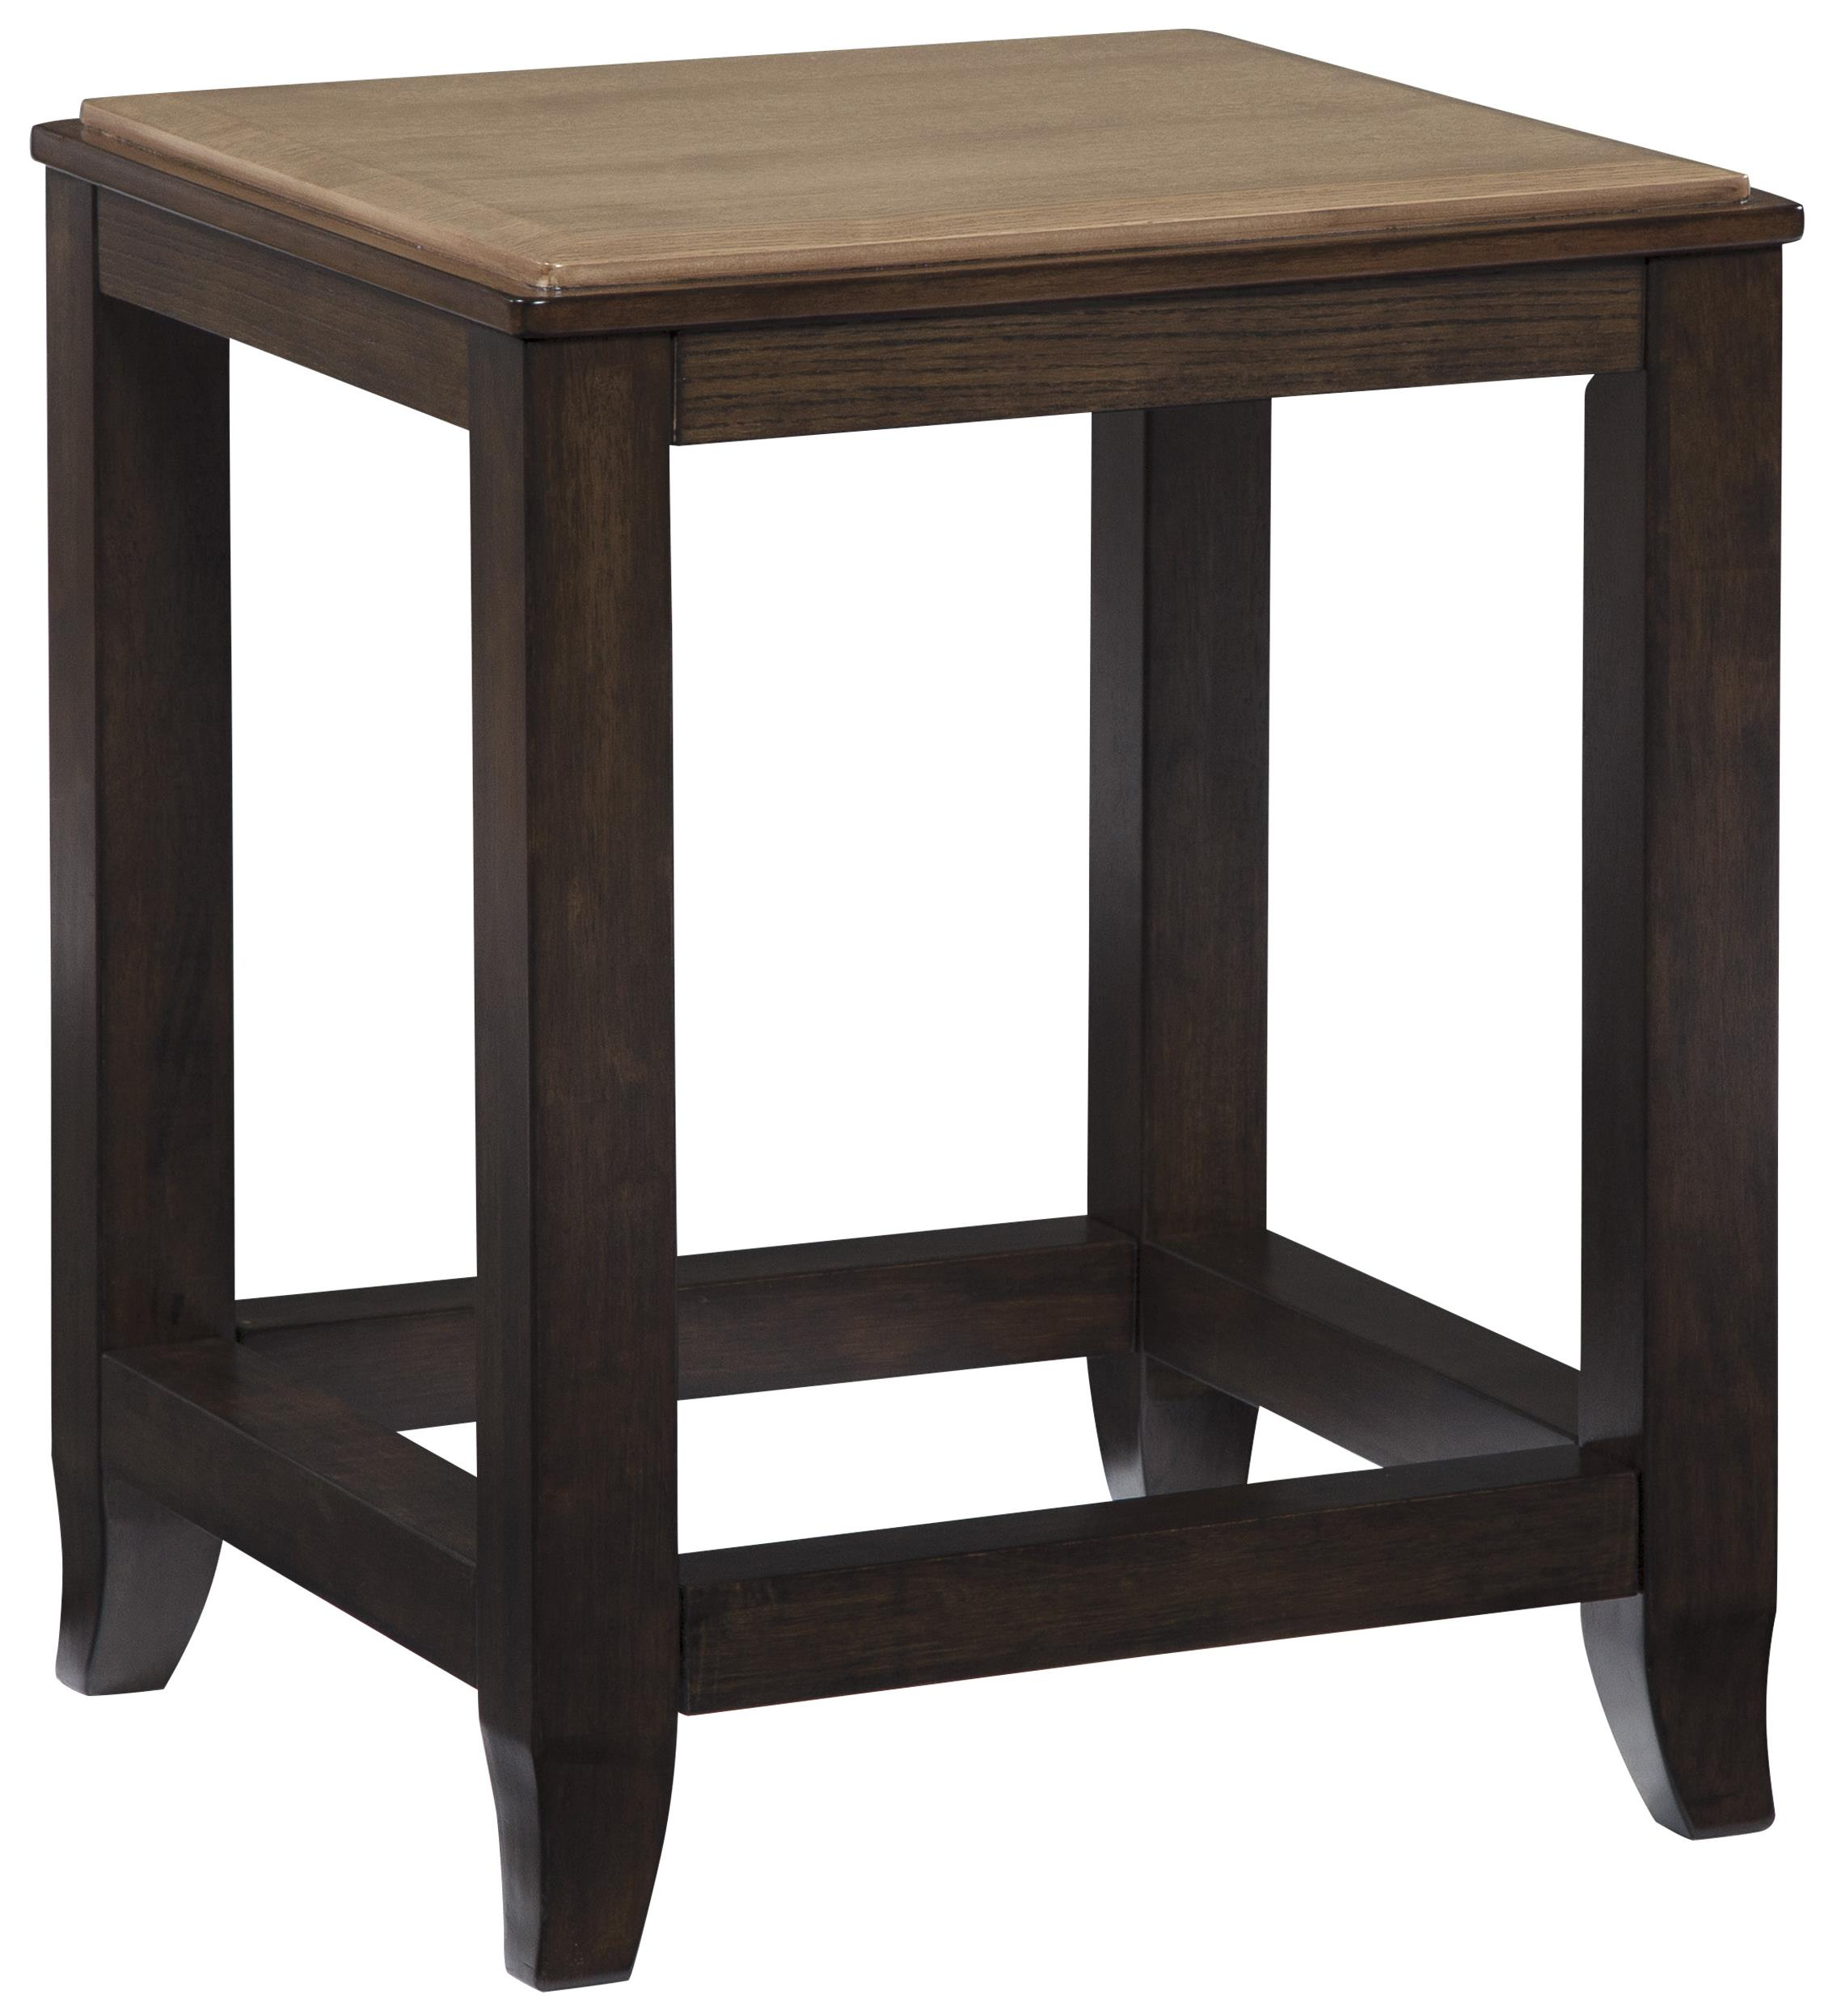 Signature Design by Ashley Mandoro Square End Table - Item Number: T388-2